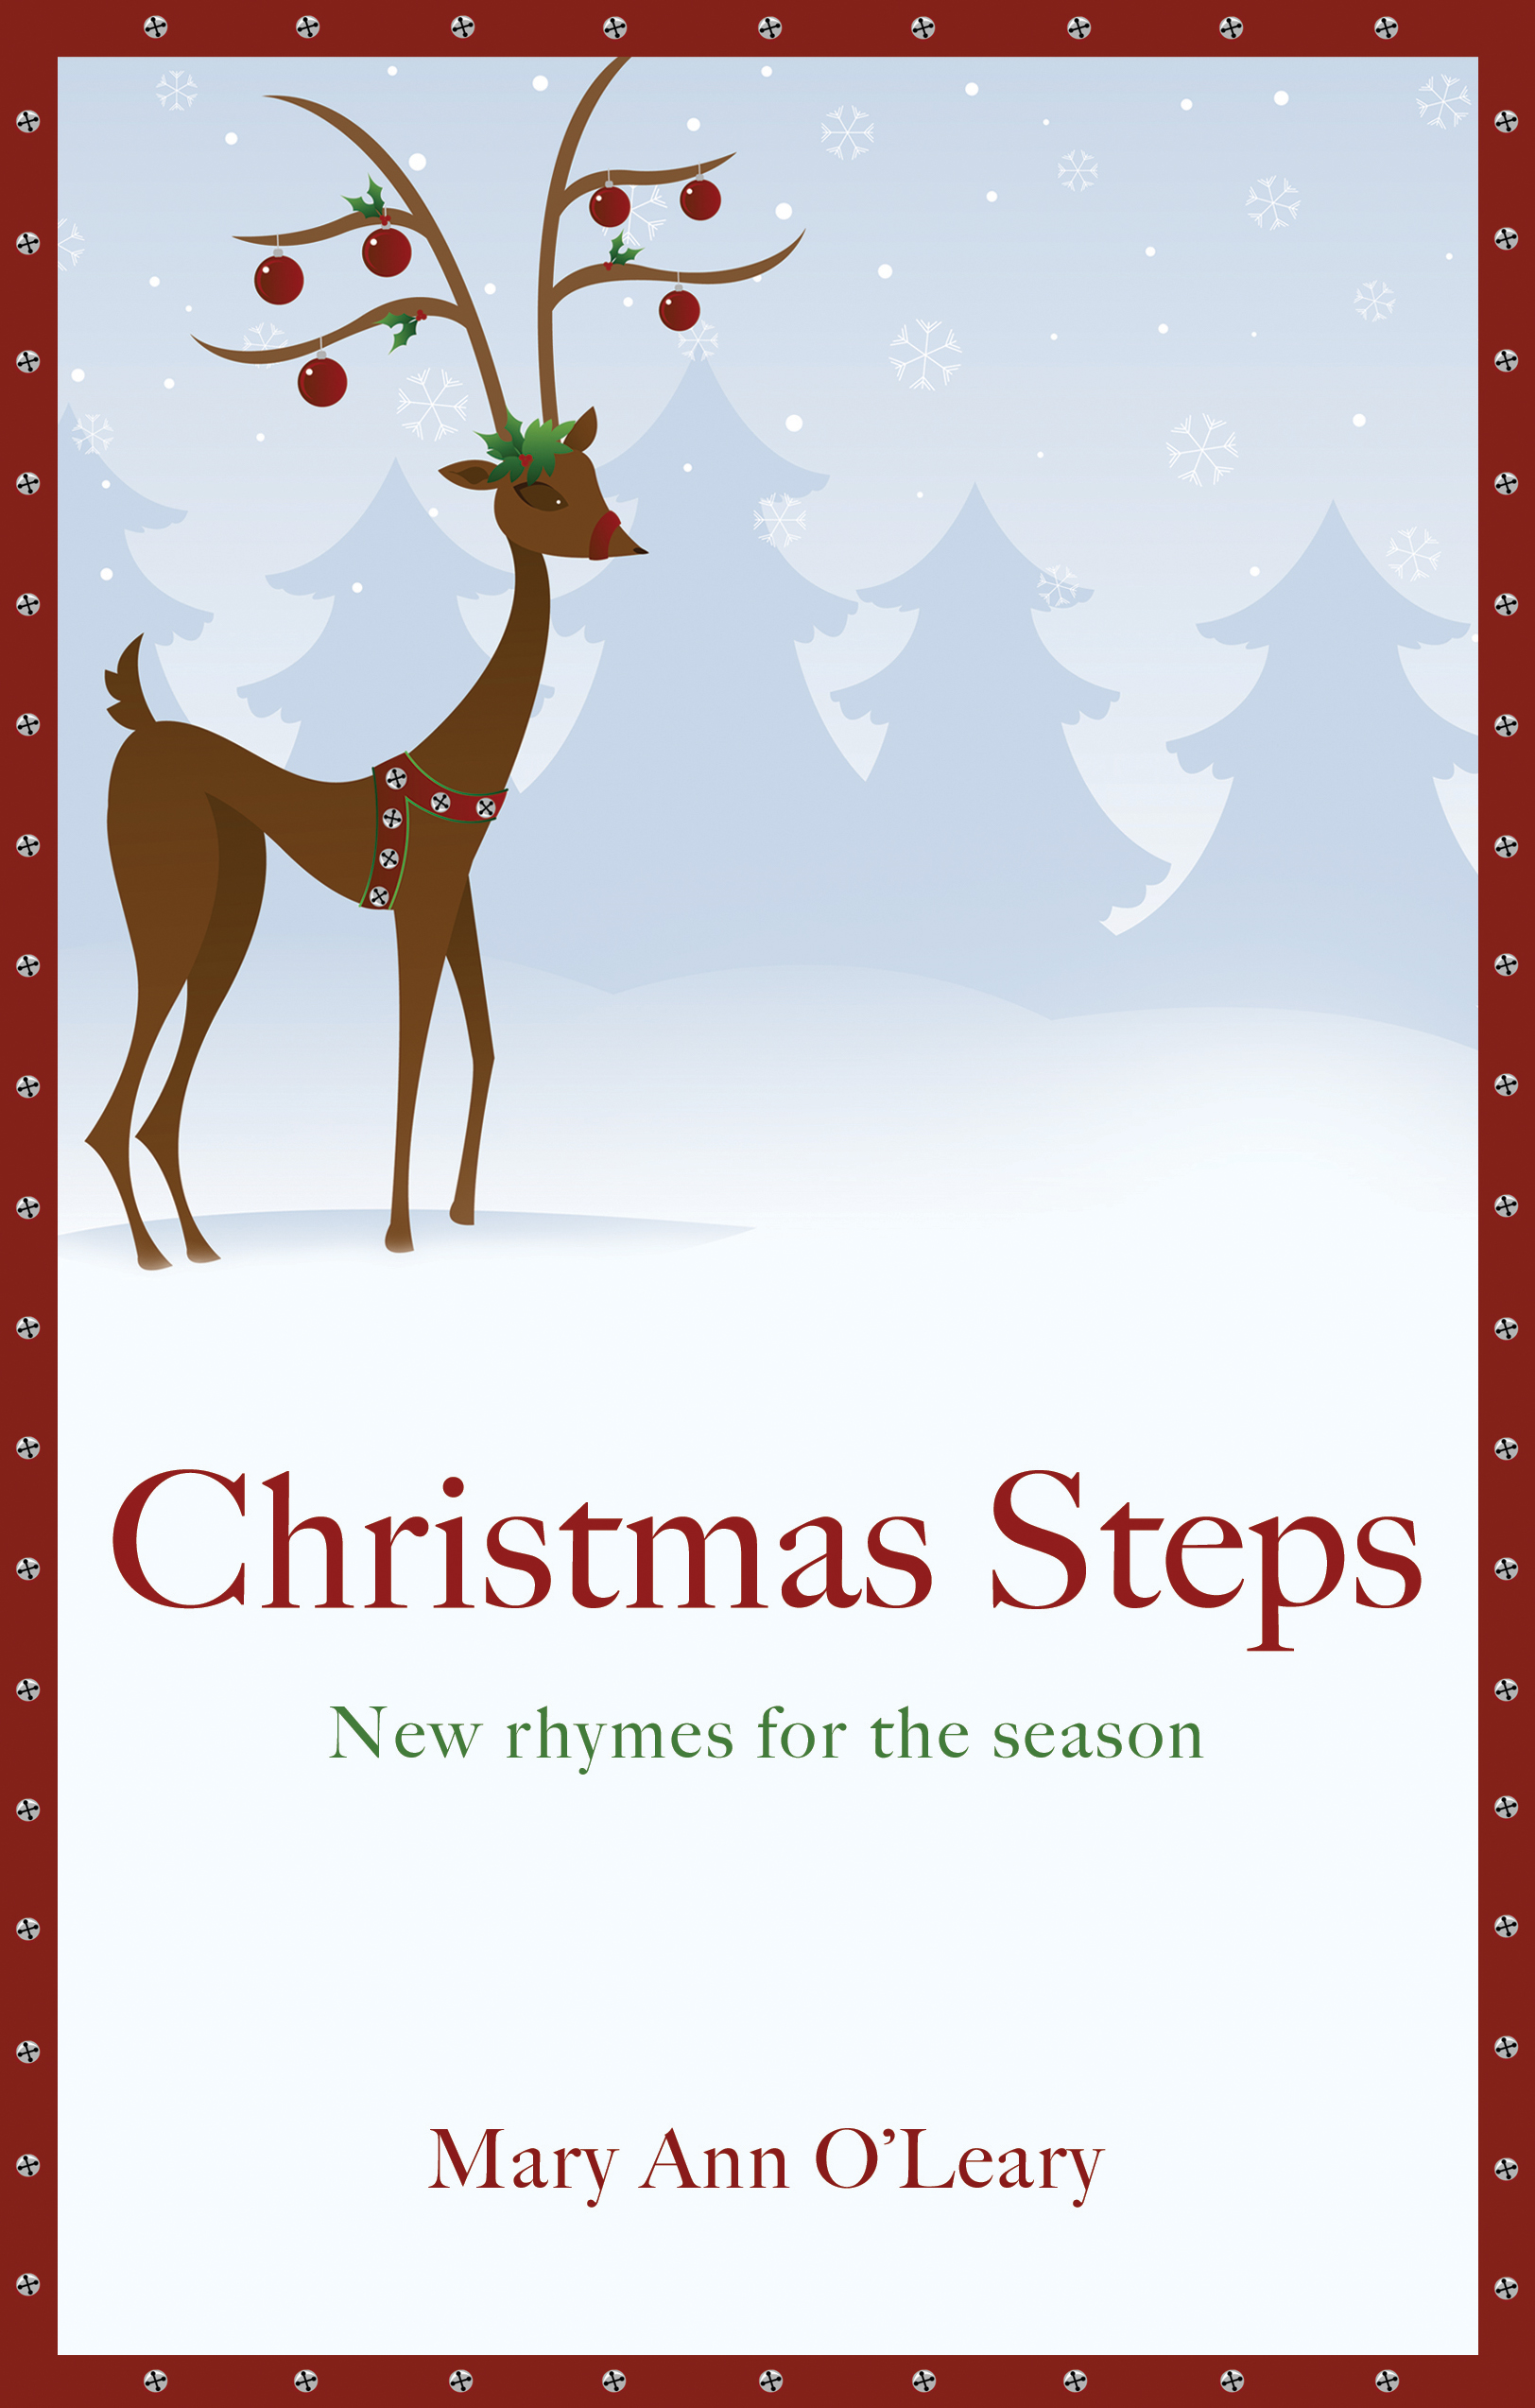 Christmas Steps New rhymes for the season